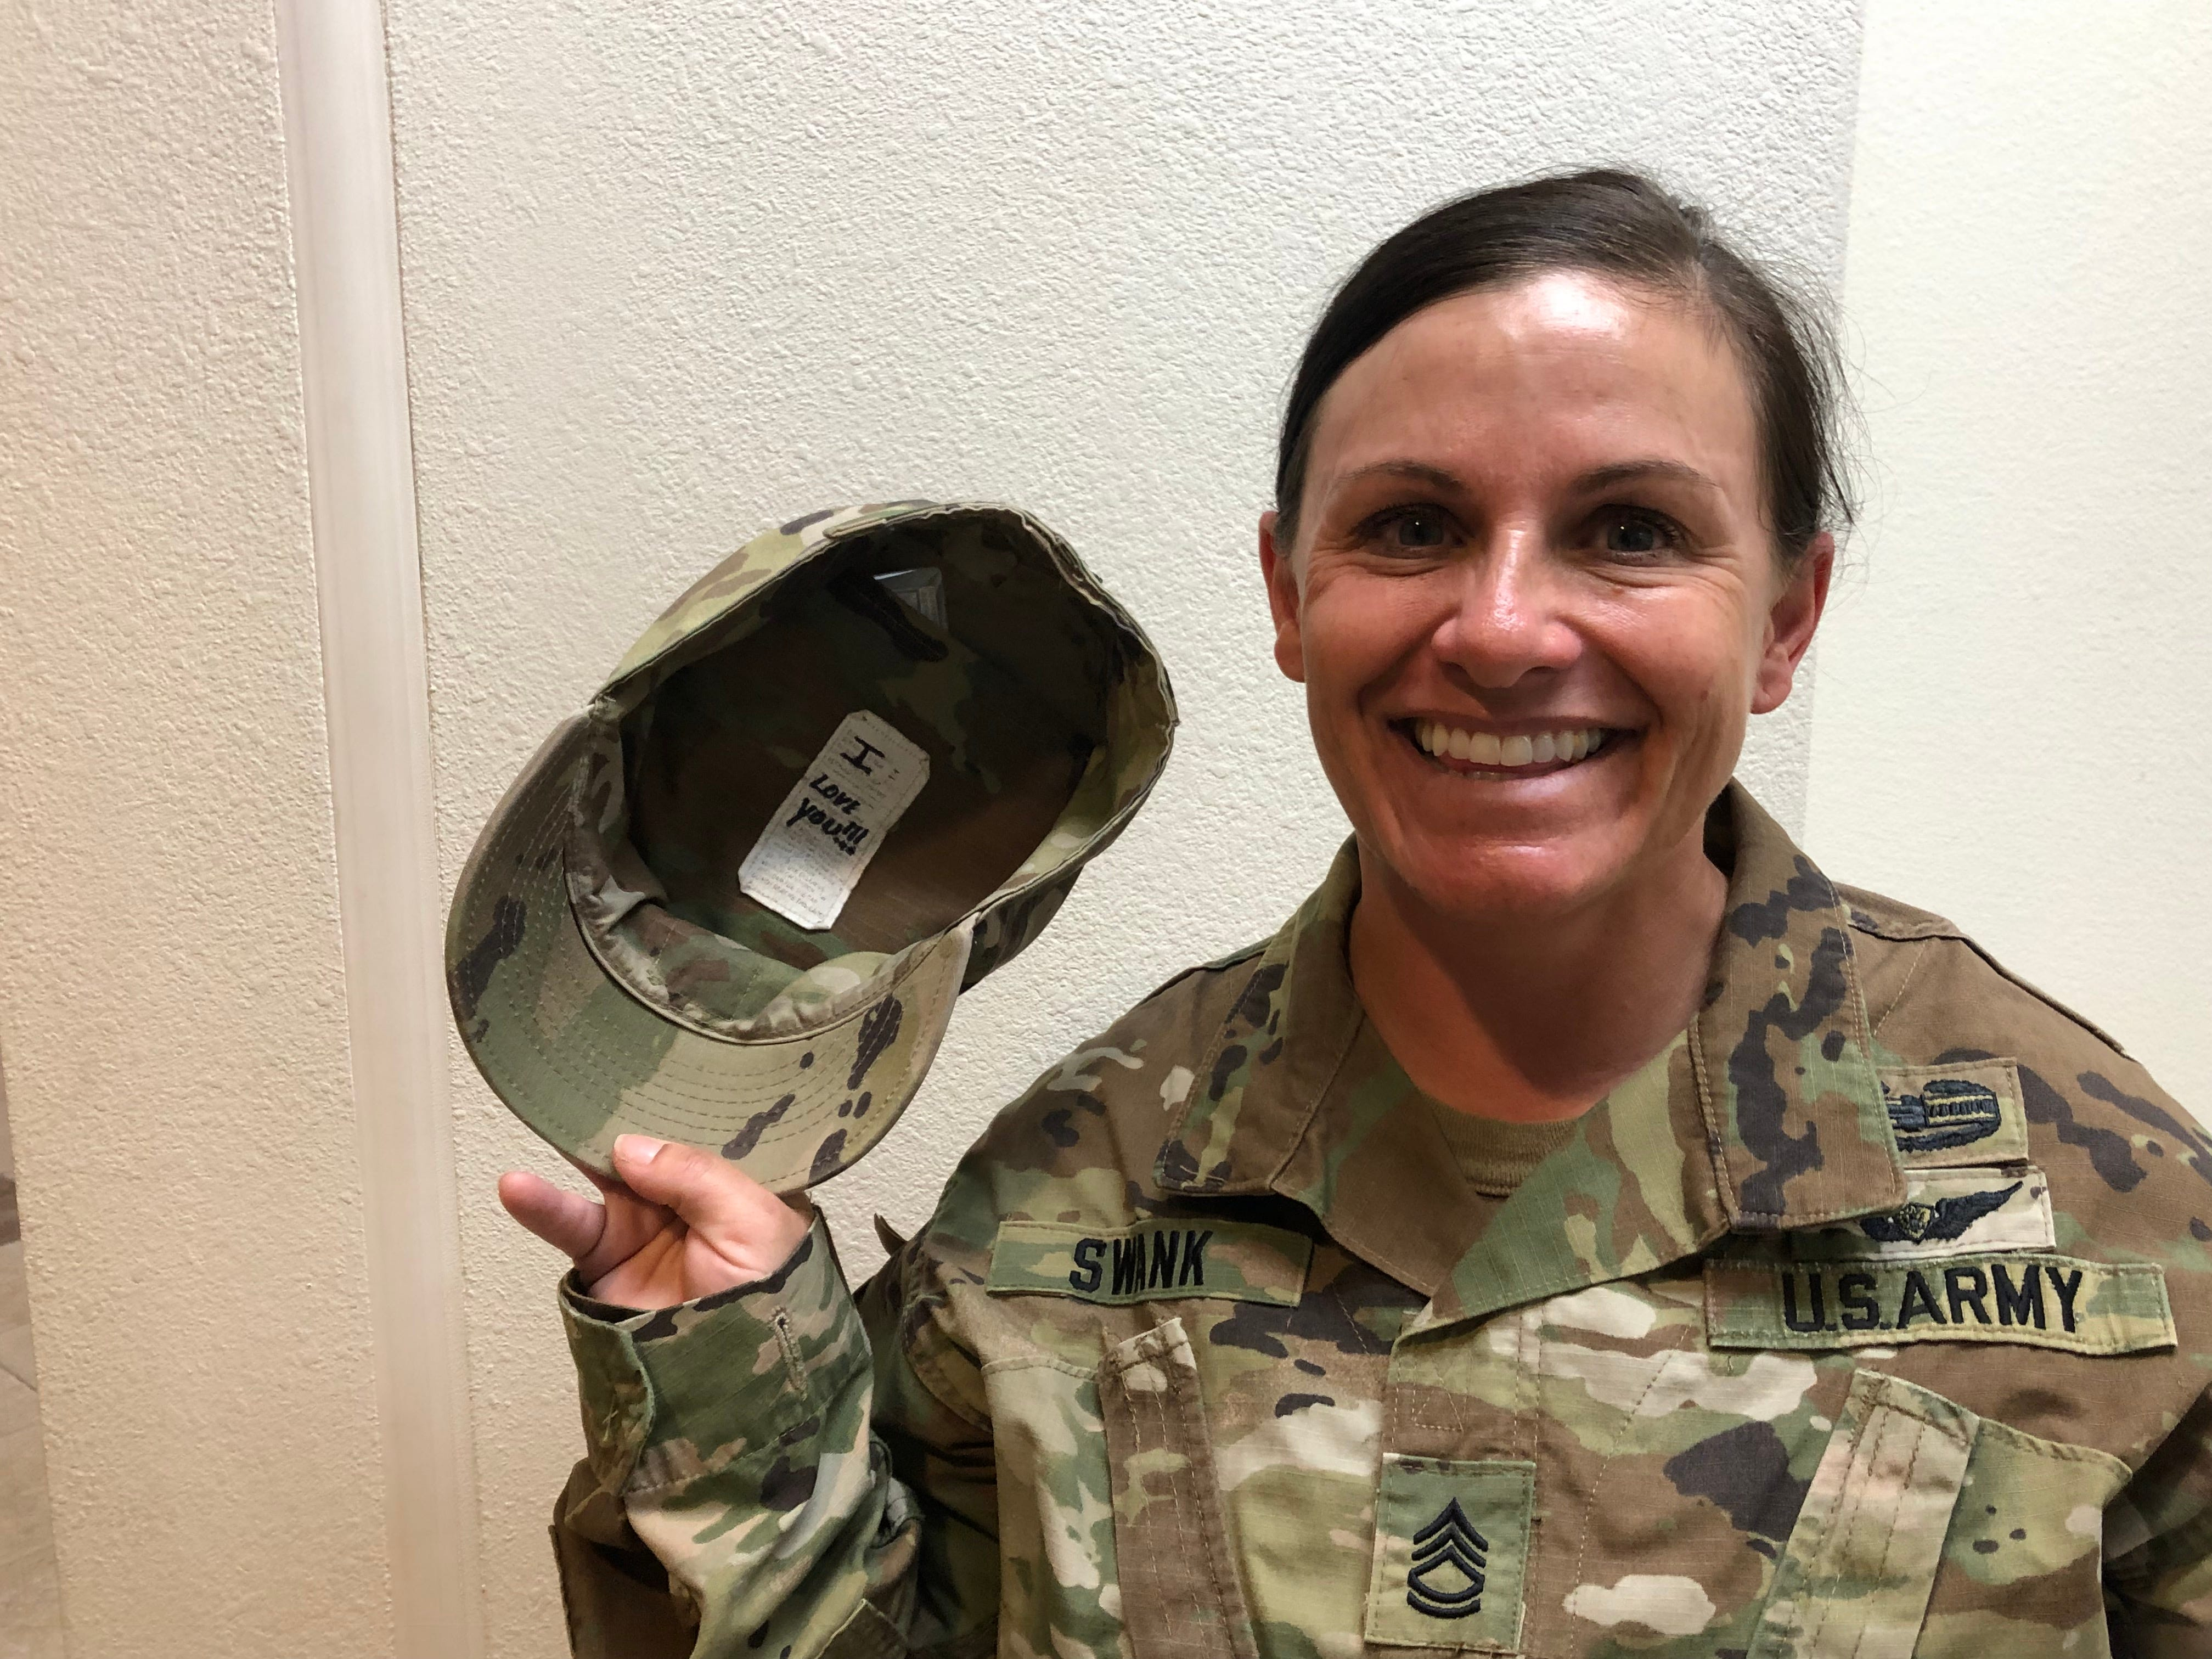 Sgt. 1st Class Teresa Swank's husband leaves a note in her hat.